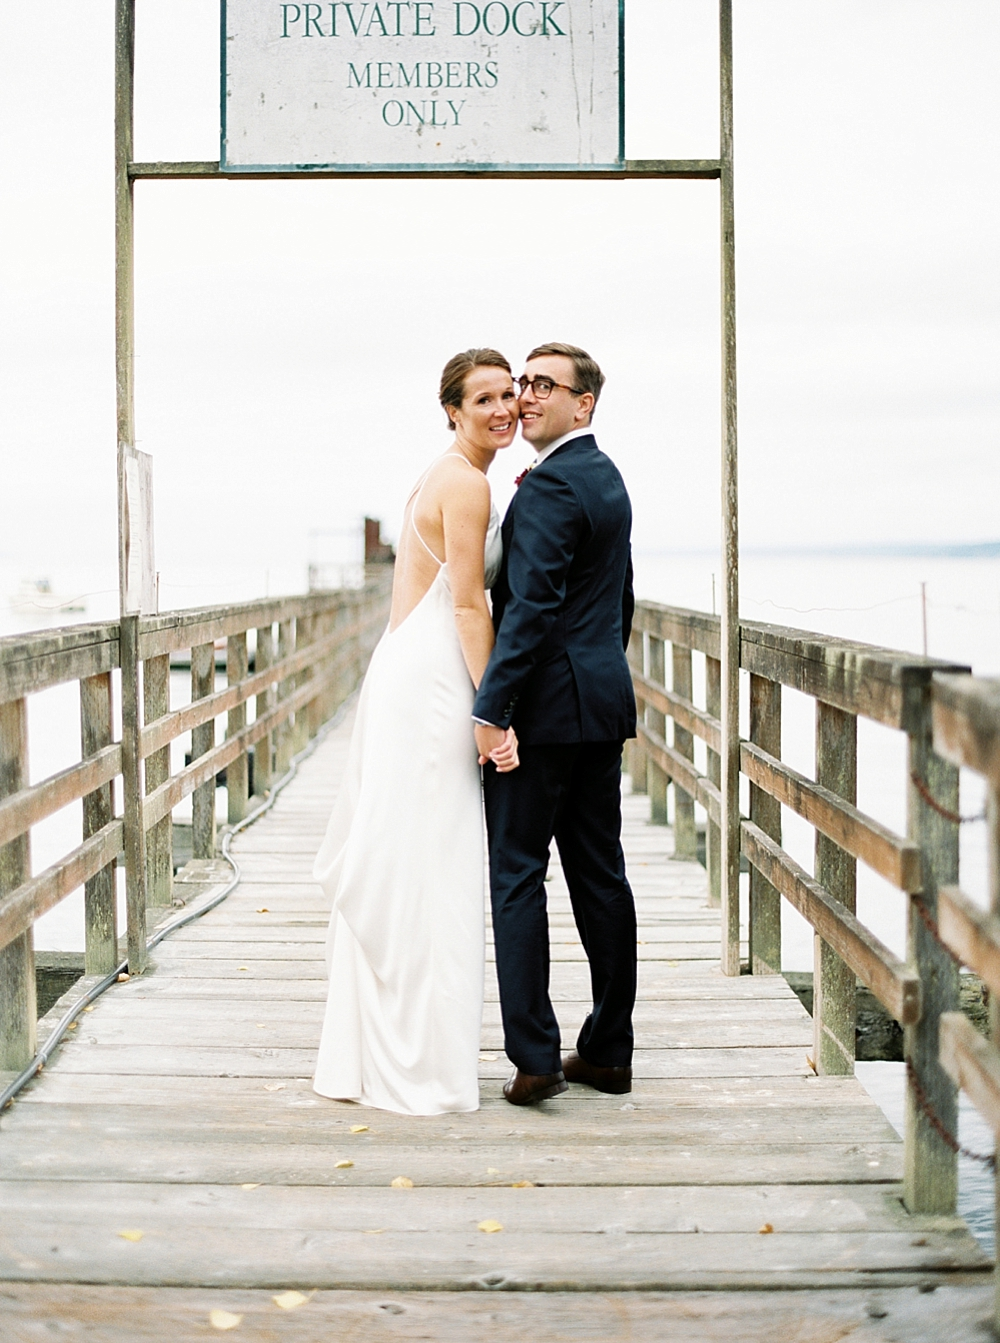 Fine Art Film Wedding Photographer | Sarah Carpenter Wedding Photography | Seattle Weddings and Destinations Worldwide